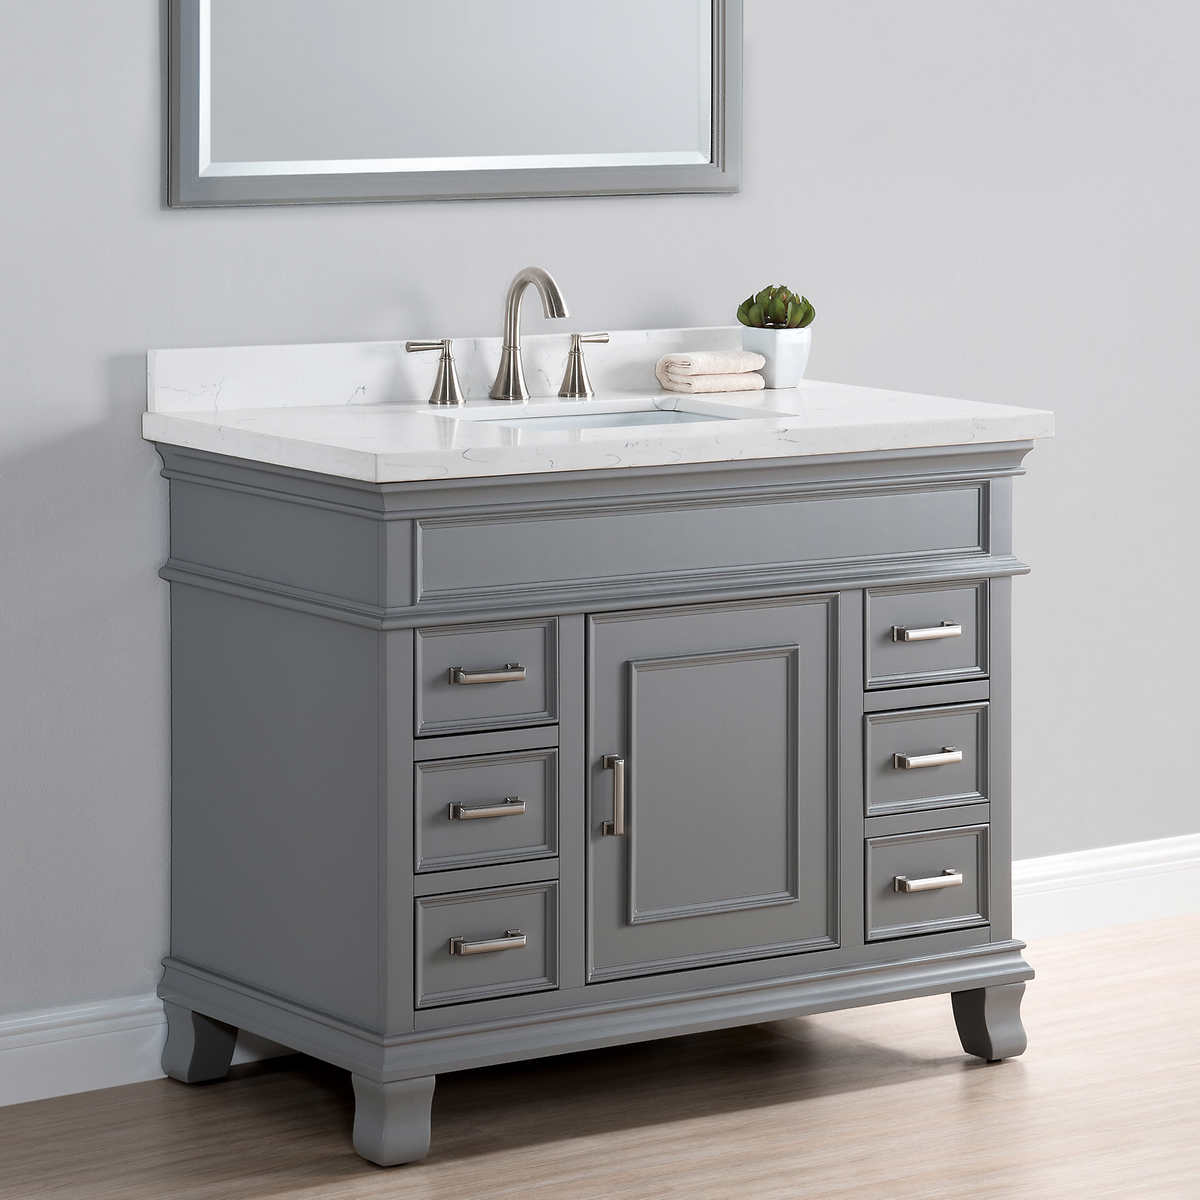 Best Inch Bathroom Vanity Ideas Only On Pinterest Inch